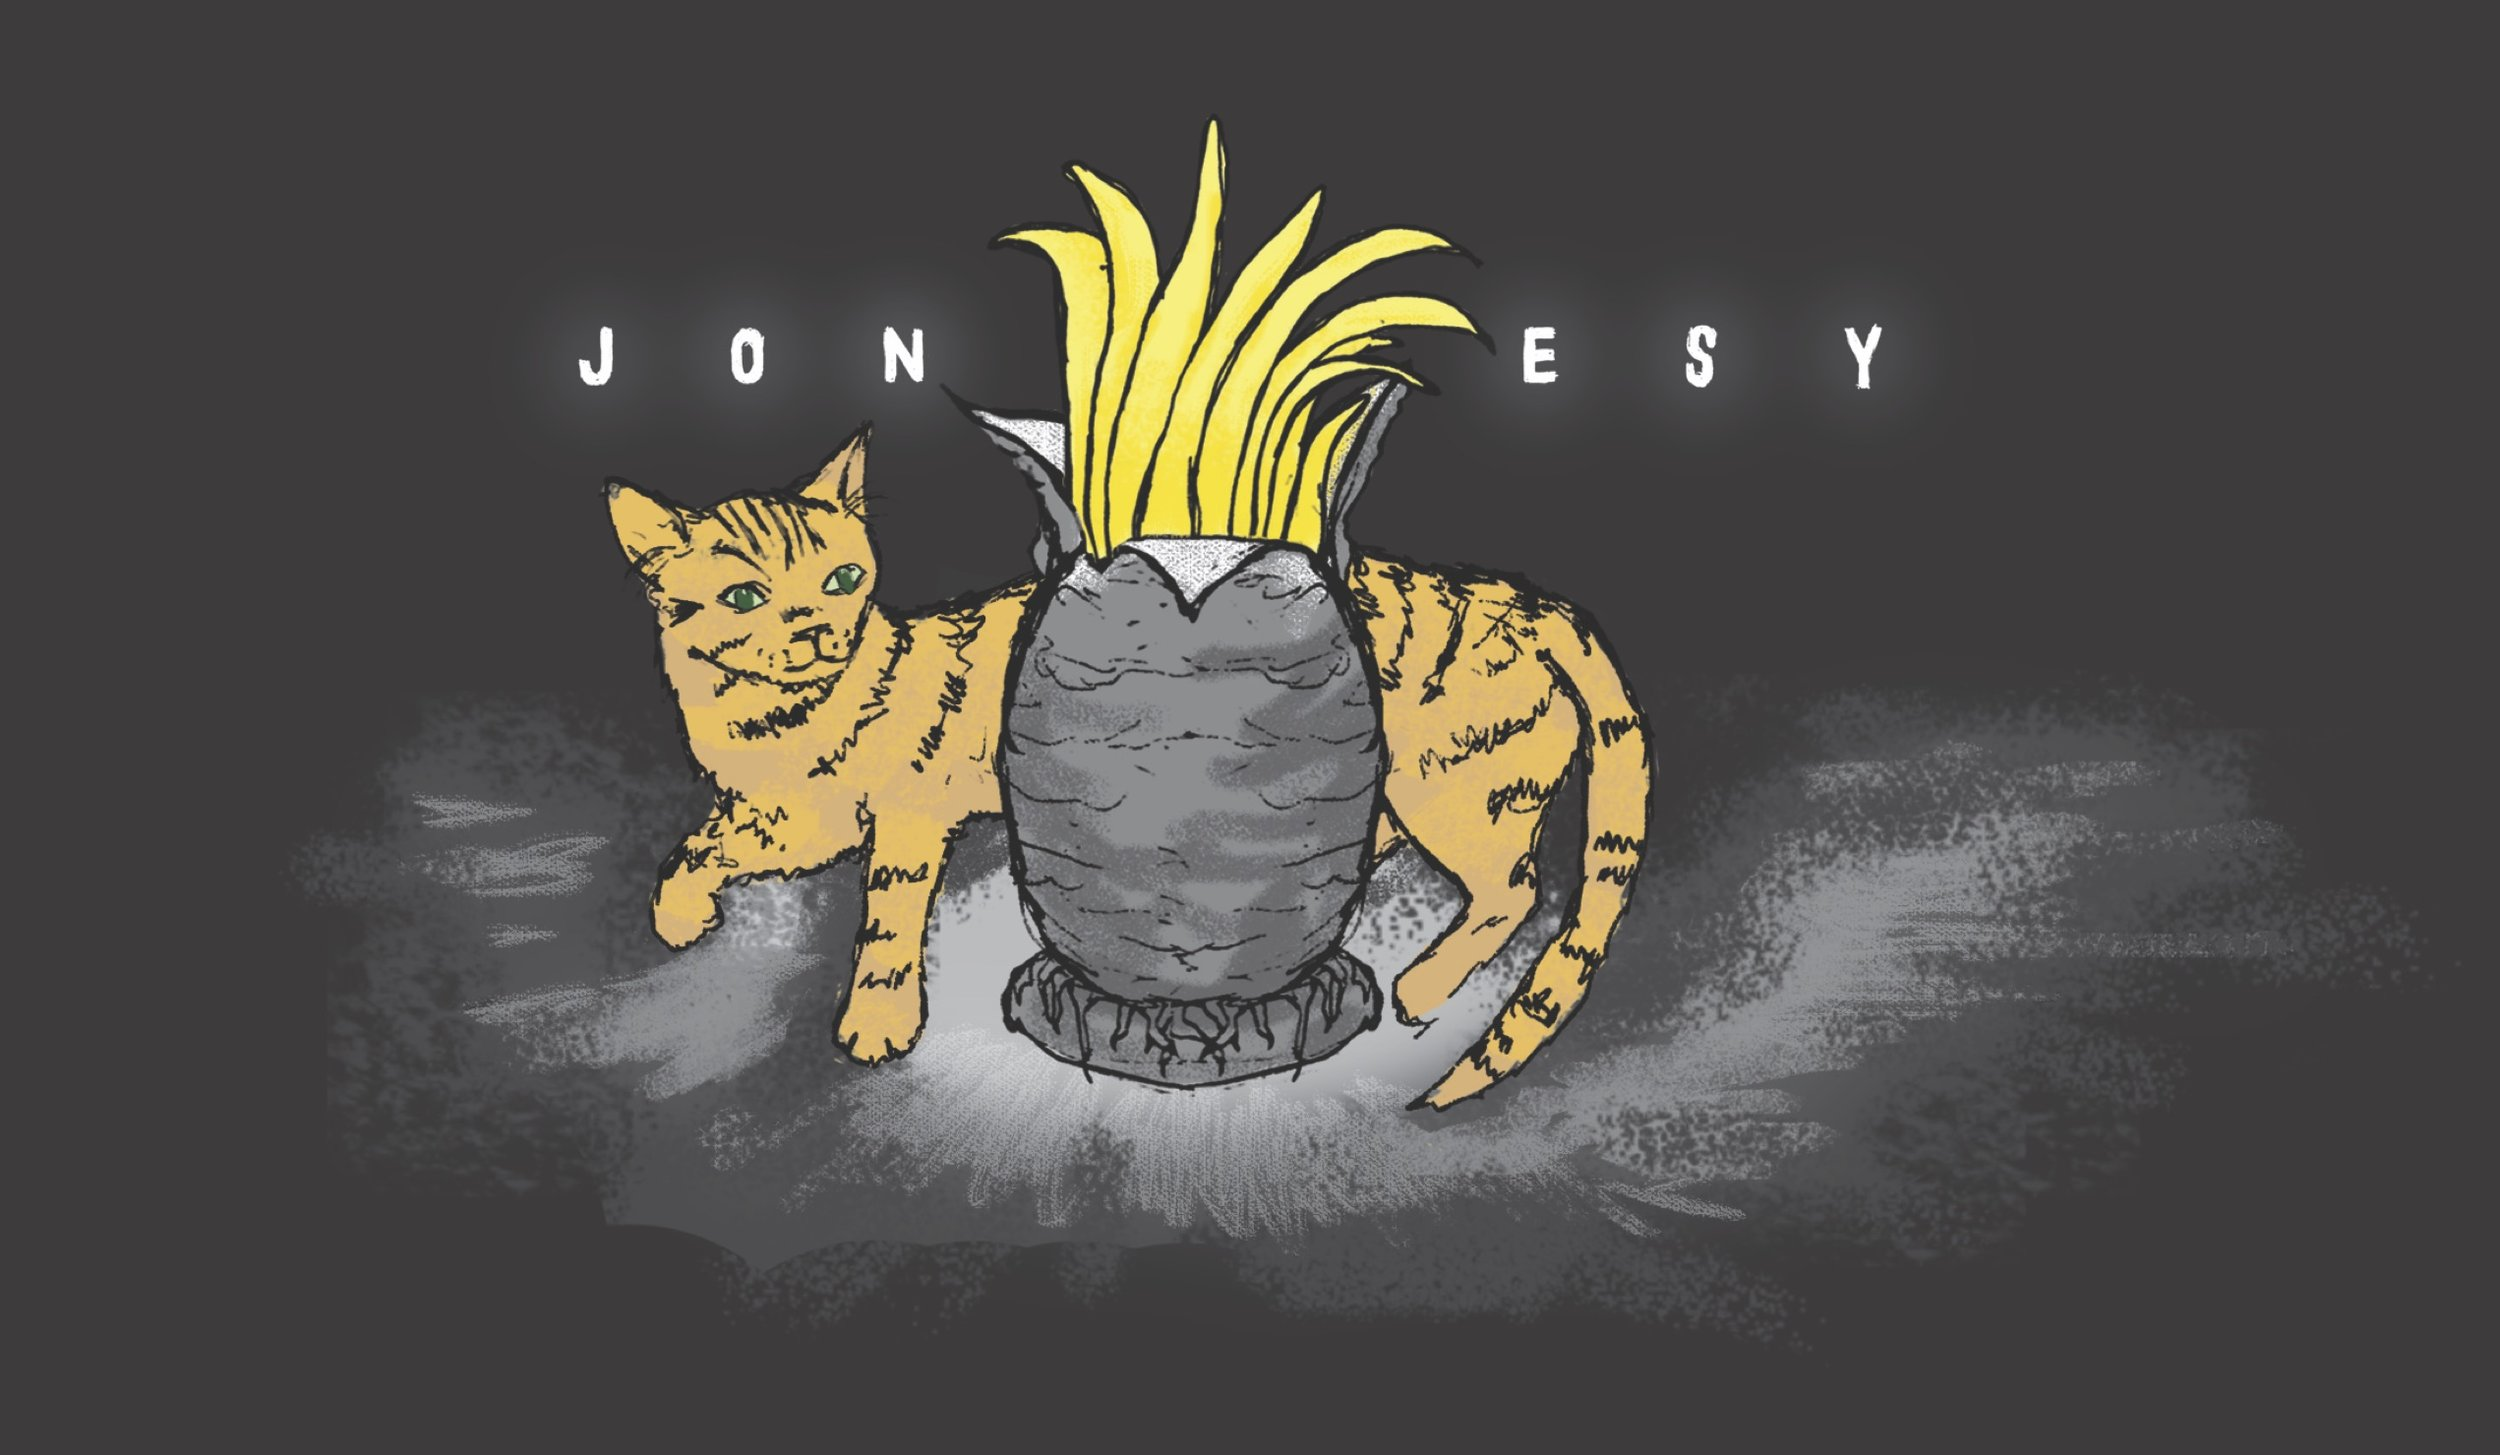 JONESY_750_ART_ONLY.jpg